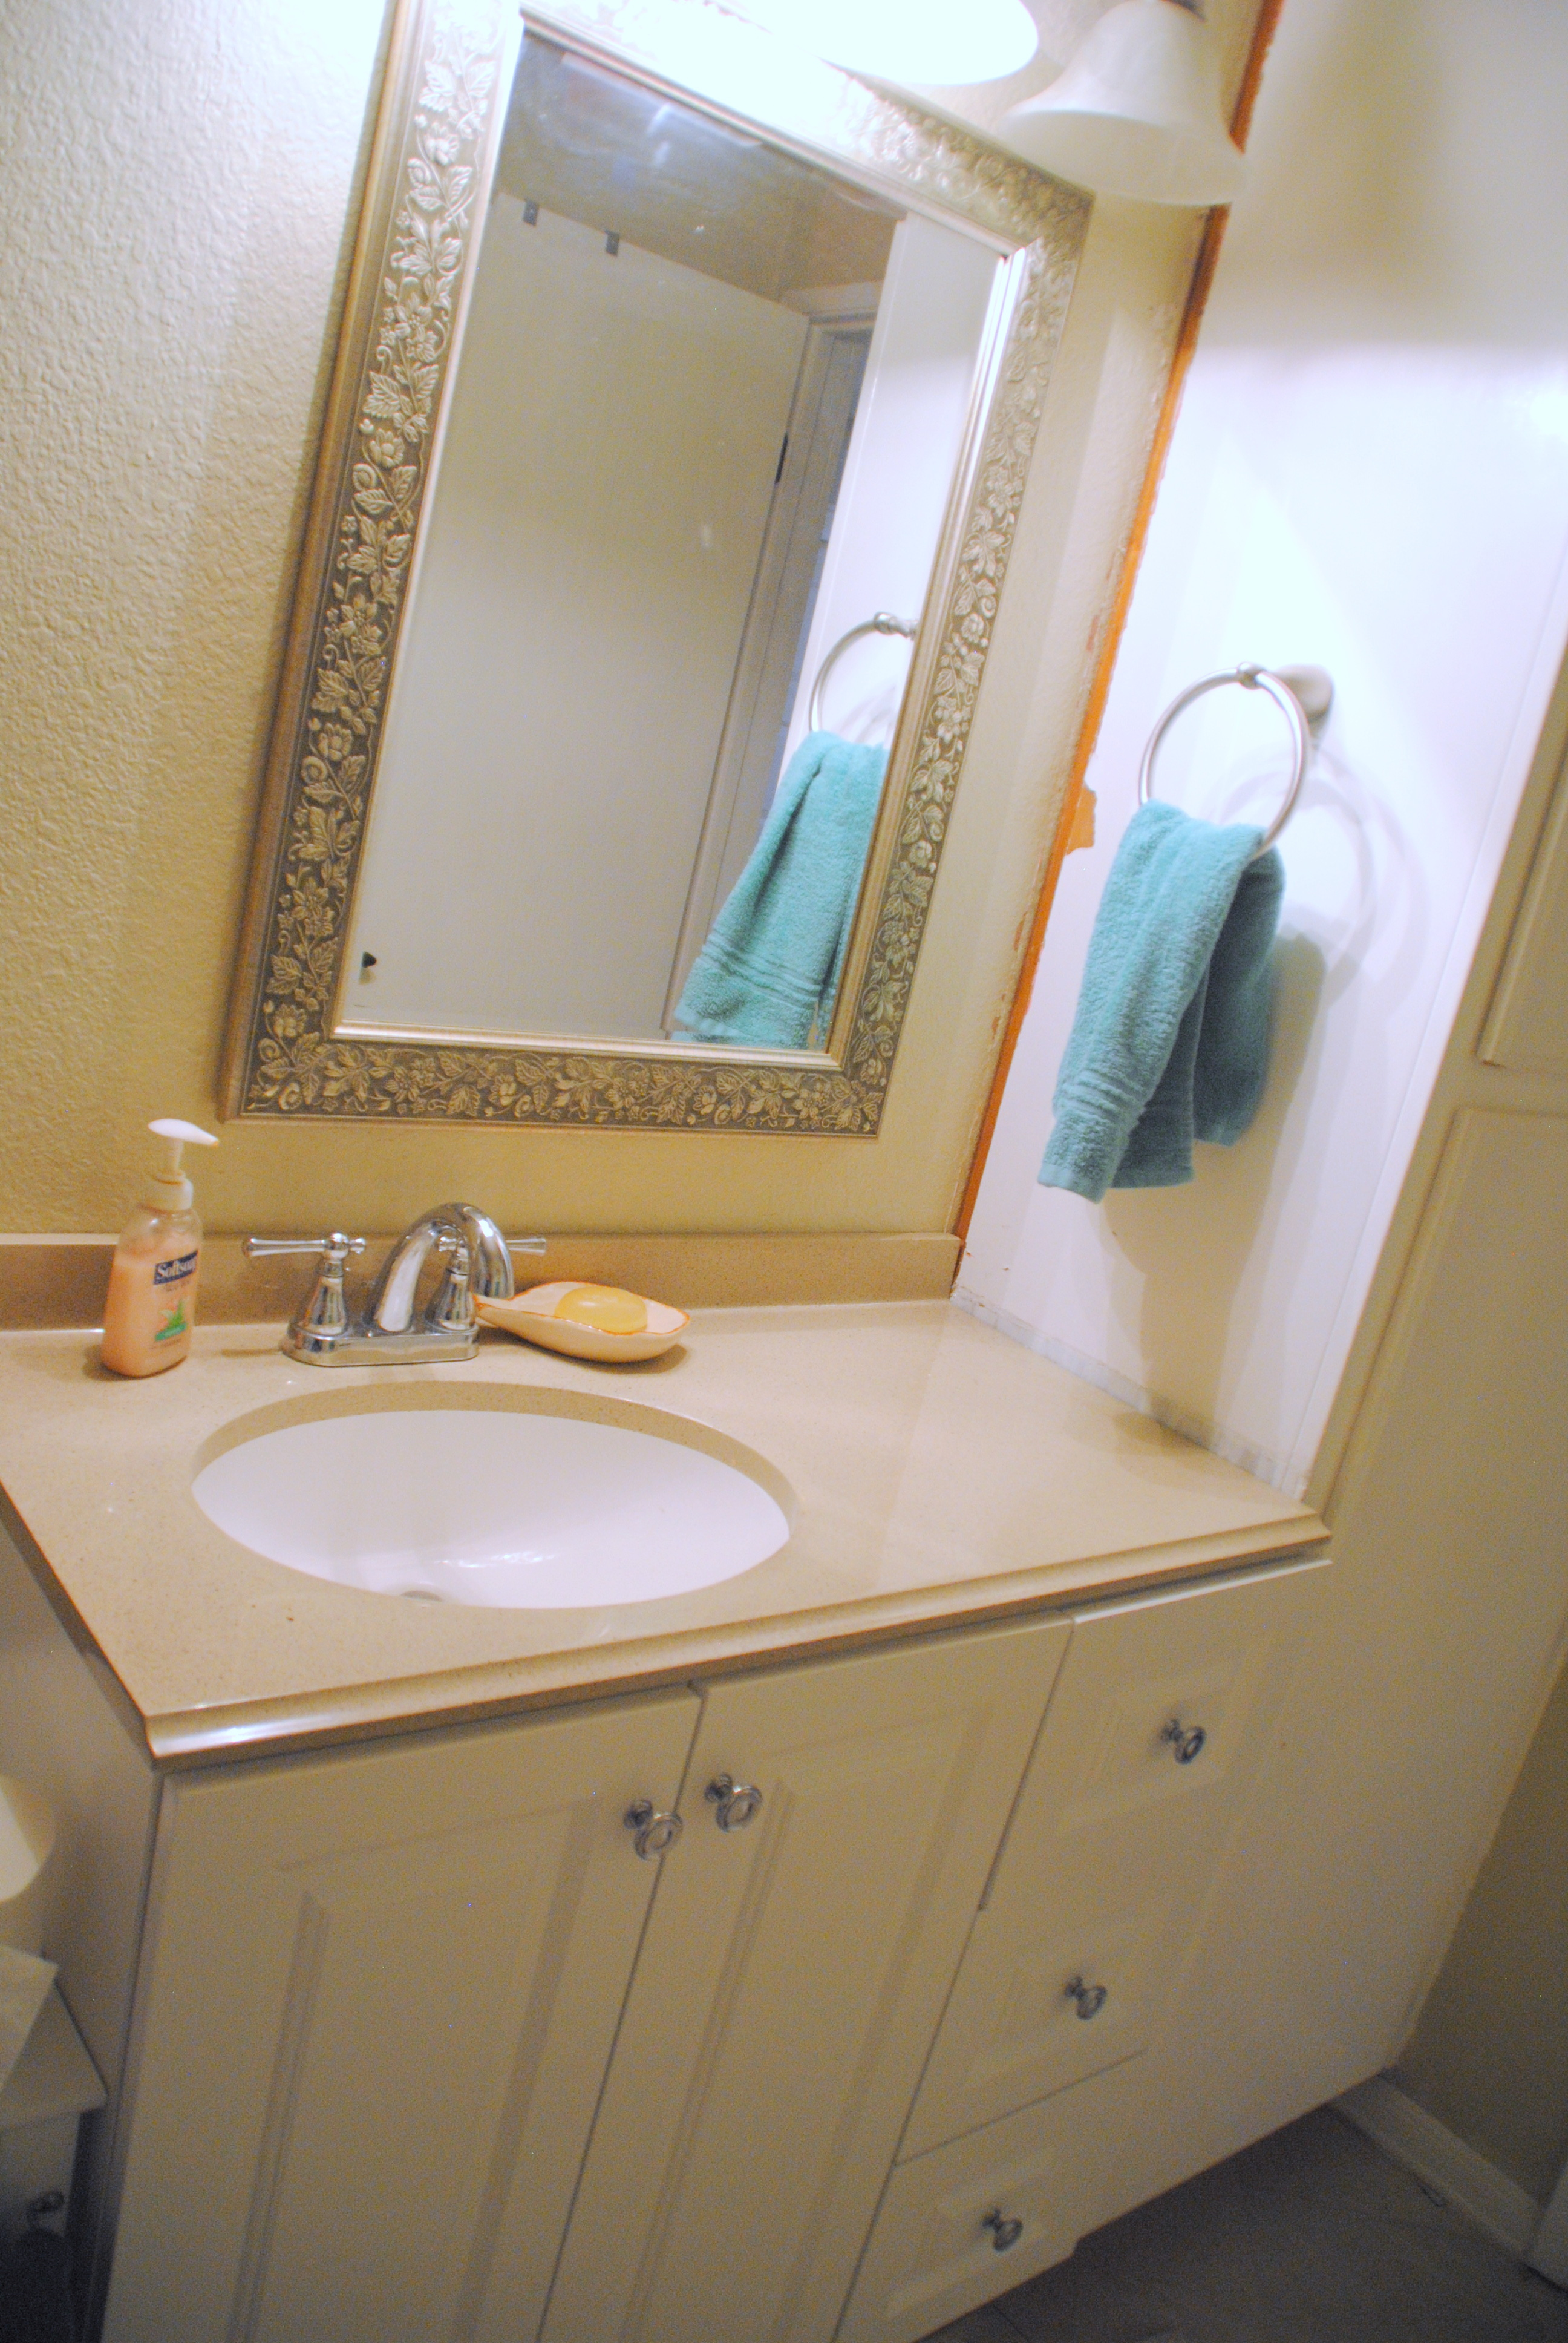 Updating the Guest Bath – My Friend Kelly